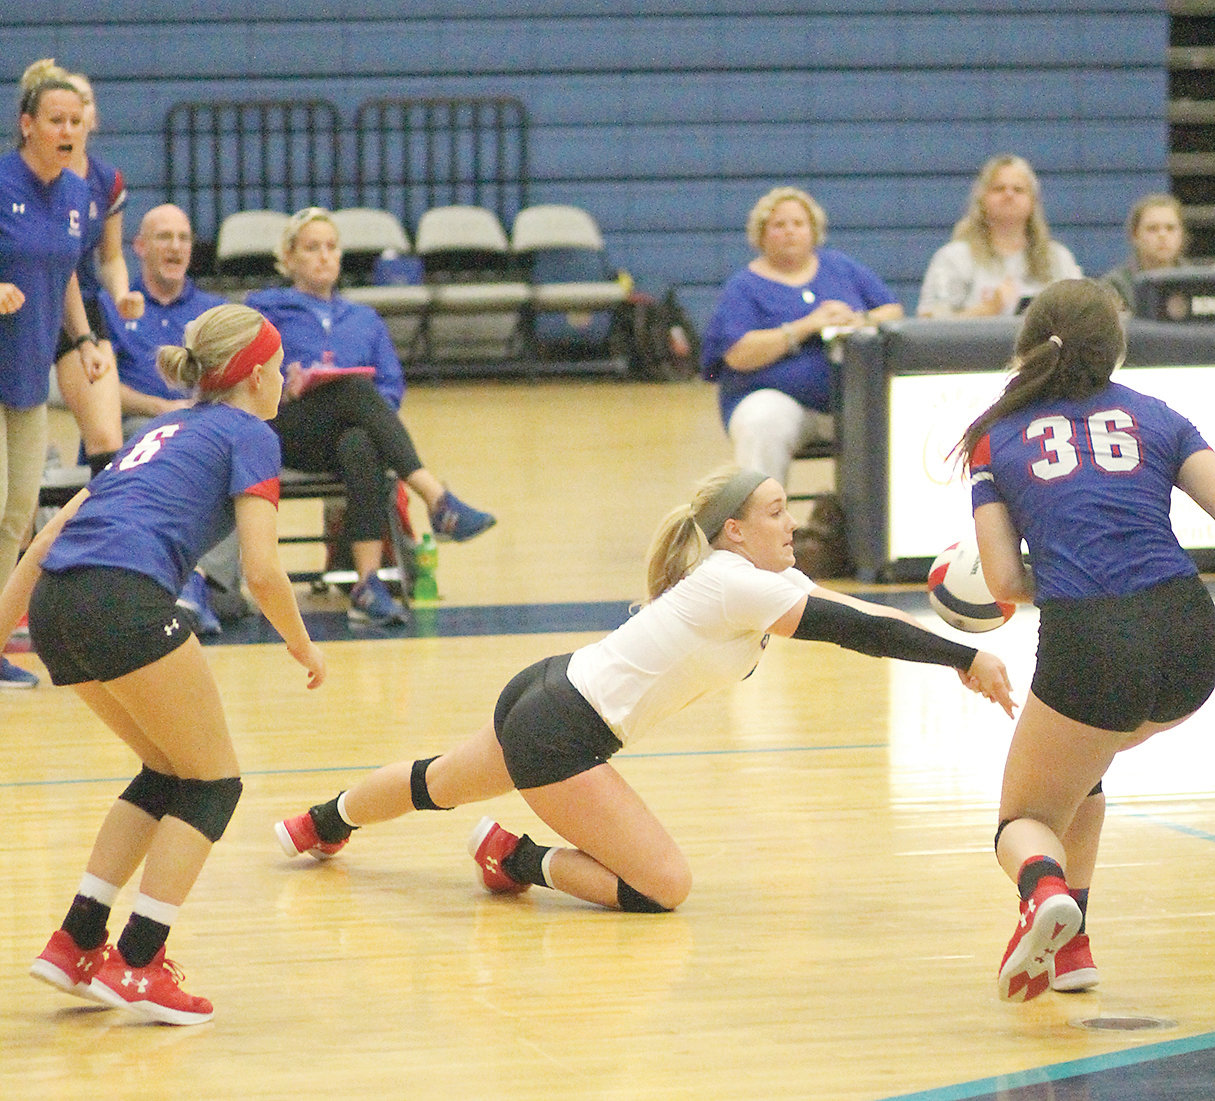 CLEVELAND SENIOR libero Lydia Martin (on floor) hits the deck to dig out a shot, while teammates Elliot Brock (6) and Anna Renshaw (36) close in during Thursday evening's TSSAA Sectional battle with Siegel in Murfreesboro.